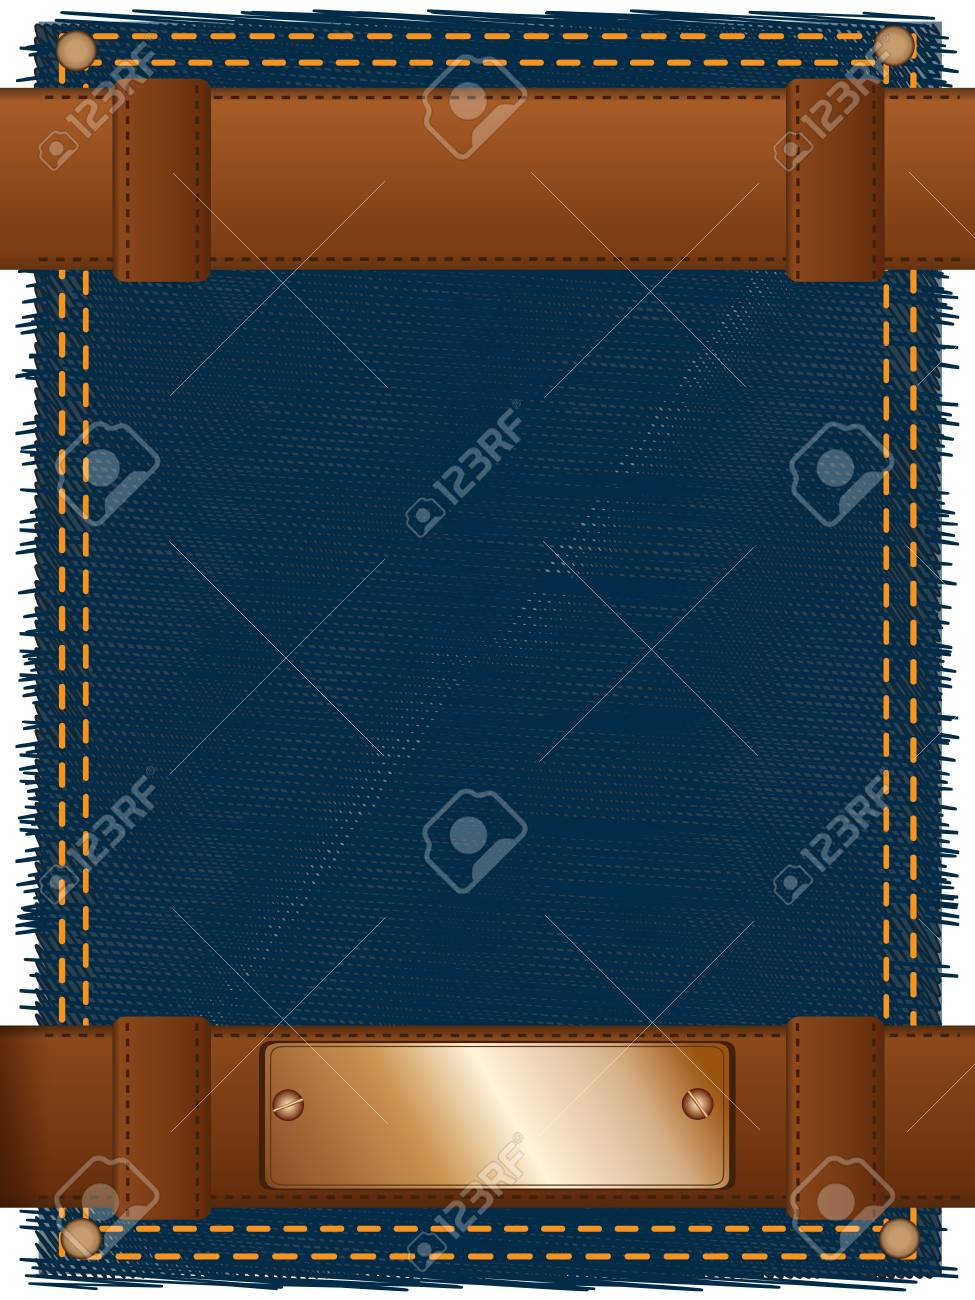 Abstract background made of two leather belts and a copper label located on a piece of a jeans fabric Stock Photo - 8759864